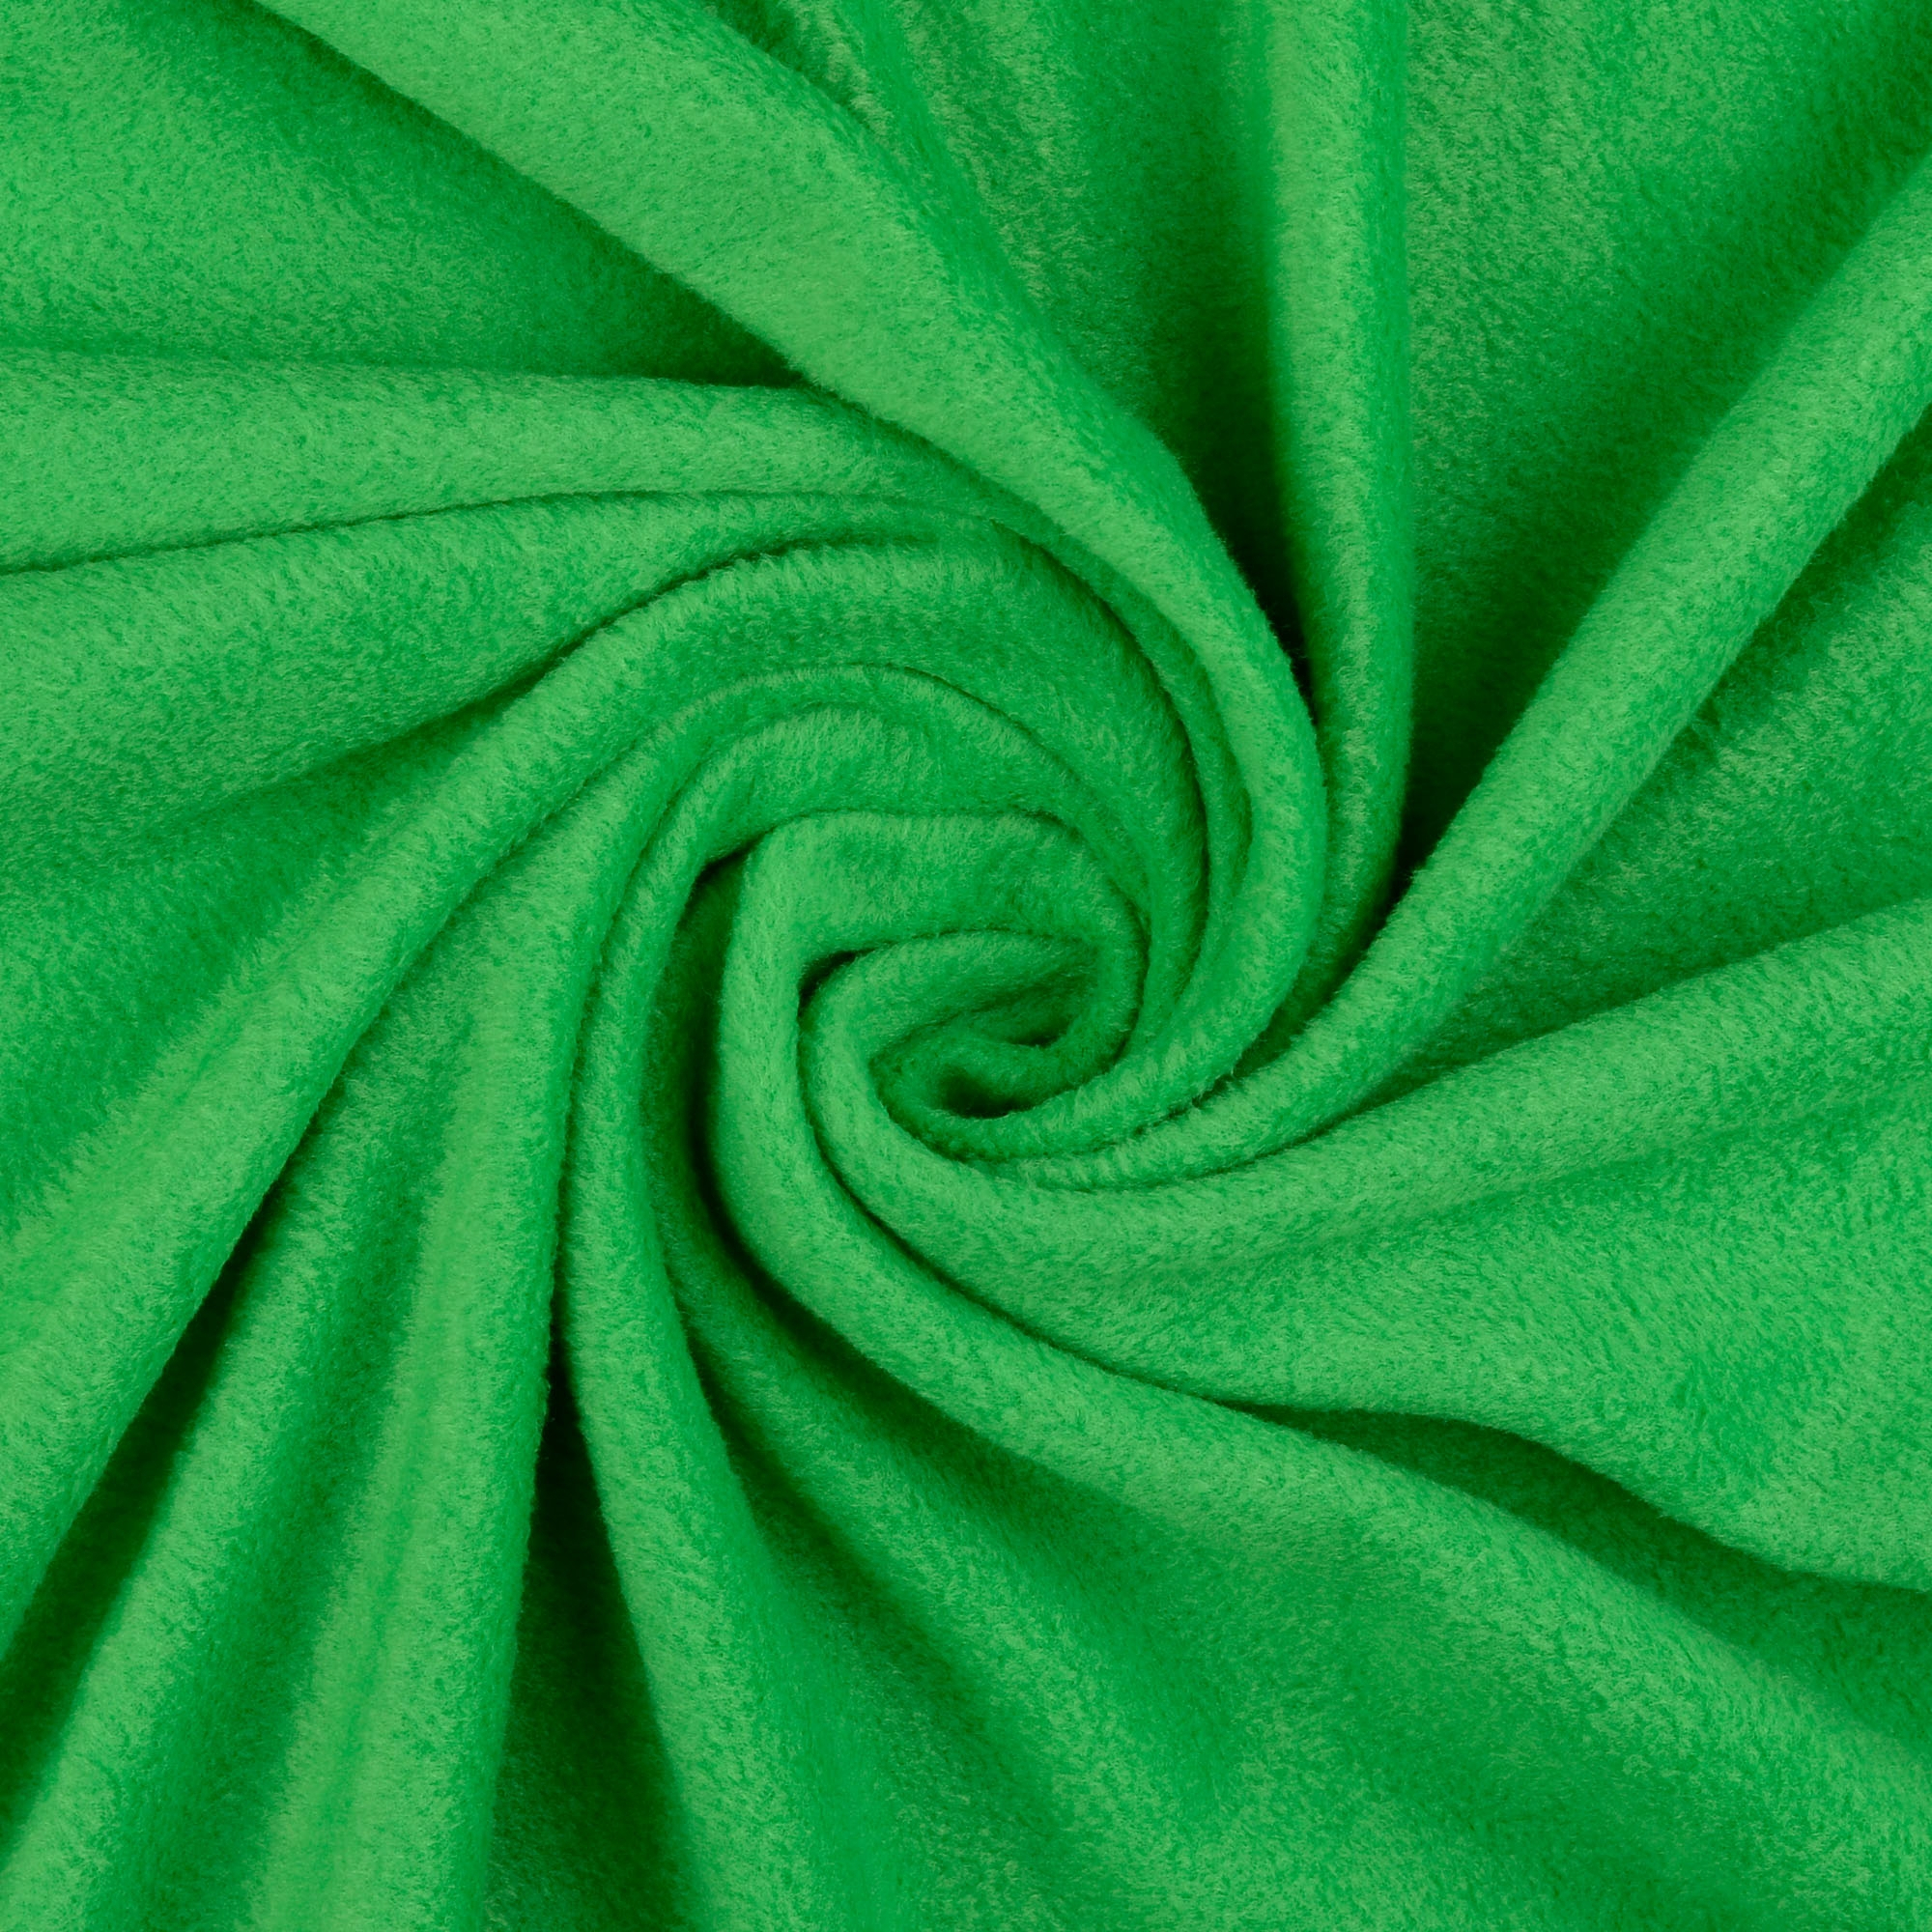 Fleece Antipilling grün | 110.704-5034 | grün